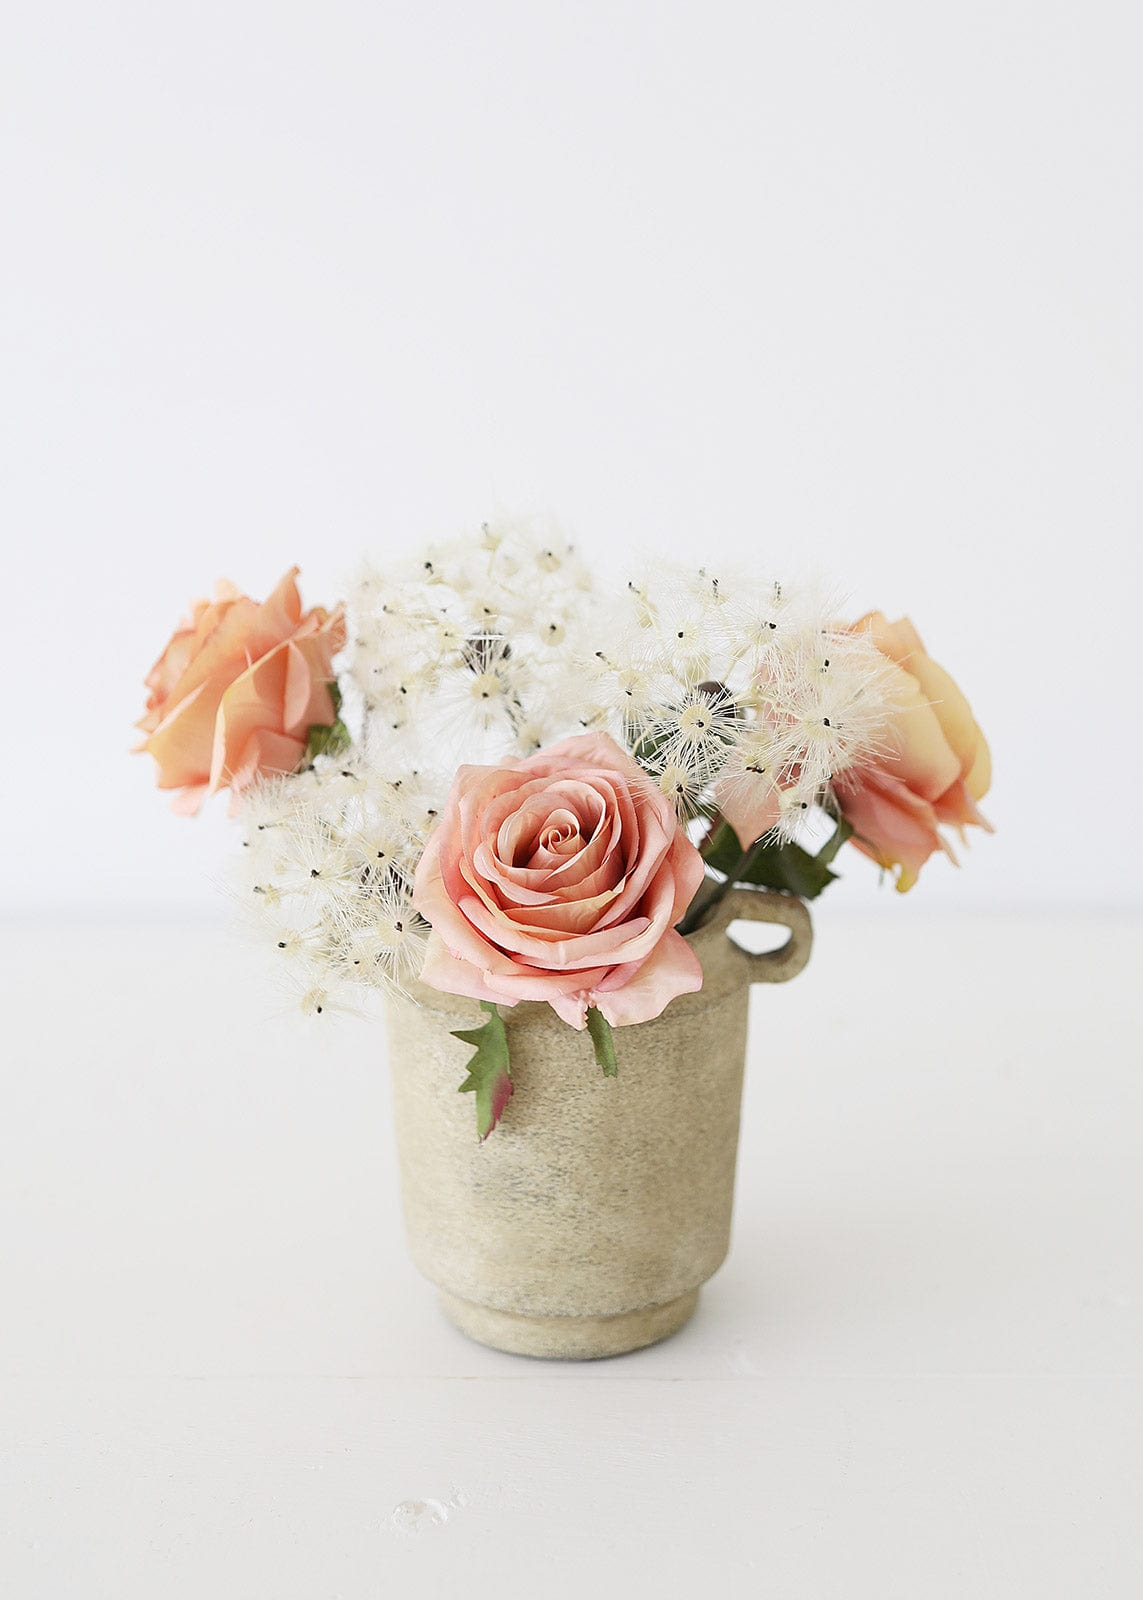 Dusty Pink Roses and Dandelion Blooms in Vase